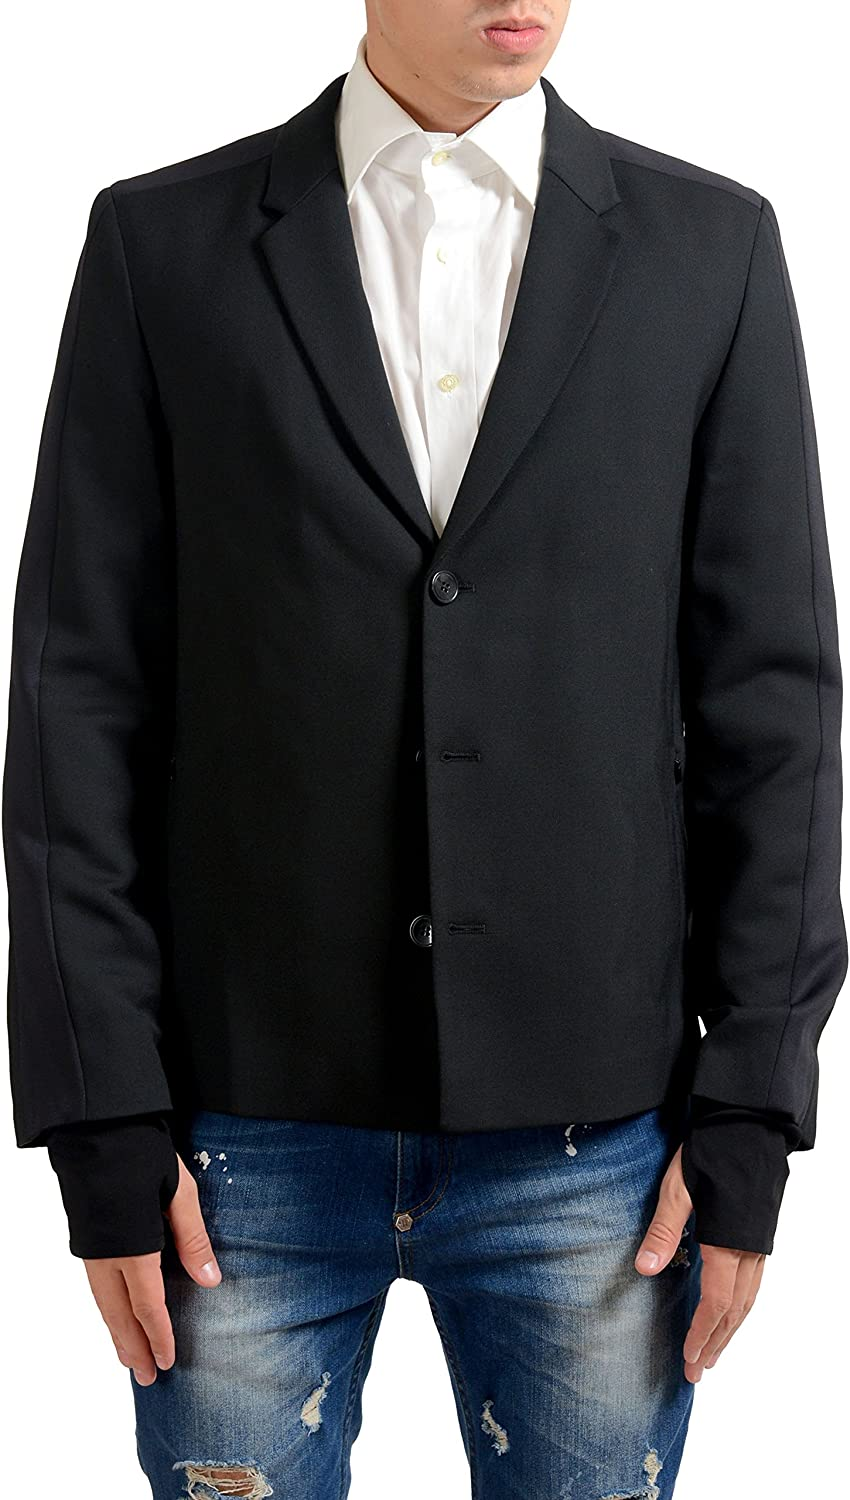 Hugo Boss Alekto Mens Wool Three Button Black Blazer Sport Coat US 38R IT 48R